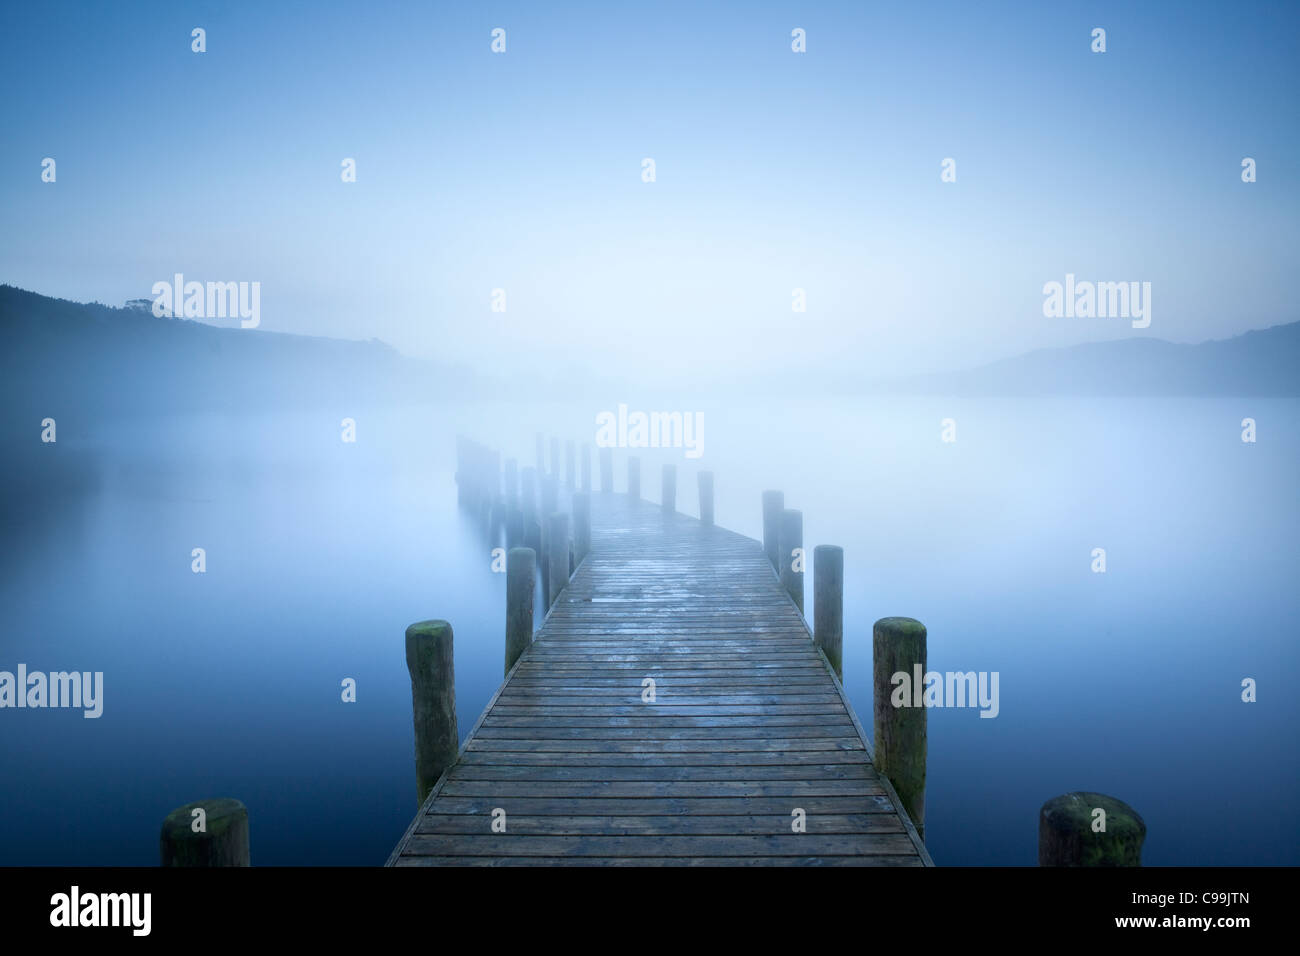 Embarcadero en Coniston agua, Cumbria, Lake District, Inglaterra Imagen De Stock